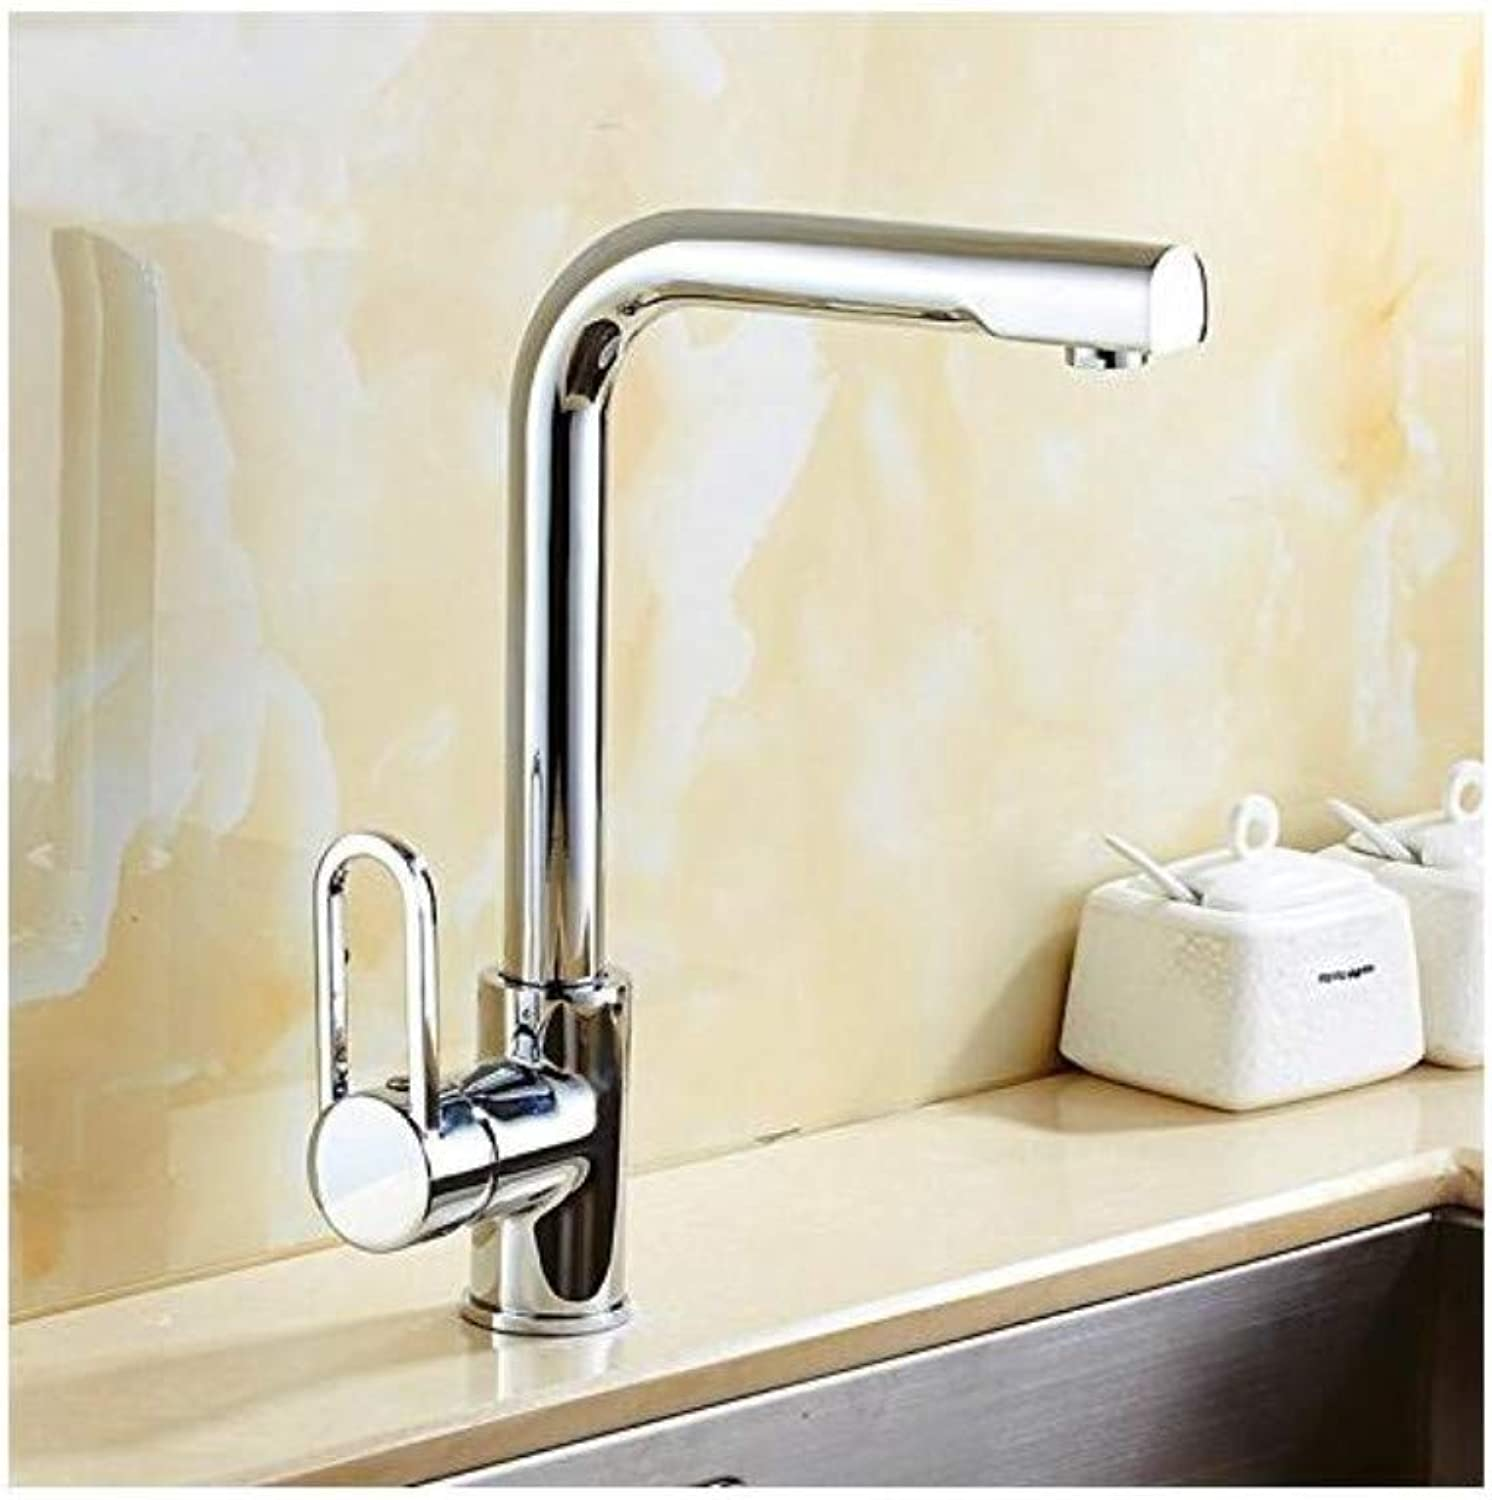 Vintage Plated Mixer Faucet Solid Brass Kitchen Faucet with Polished Chrome Kitchen Sink Faucet by Single Handle Sanitary Ware